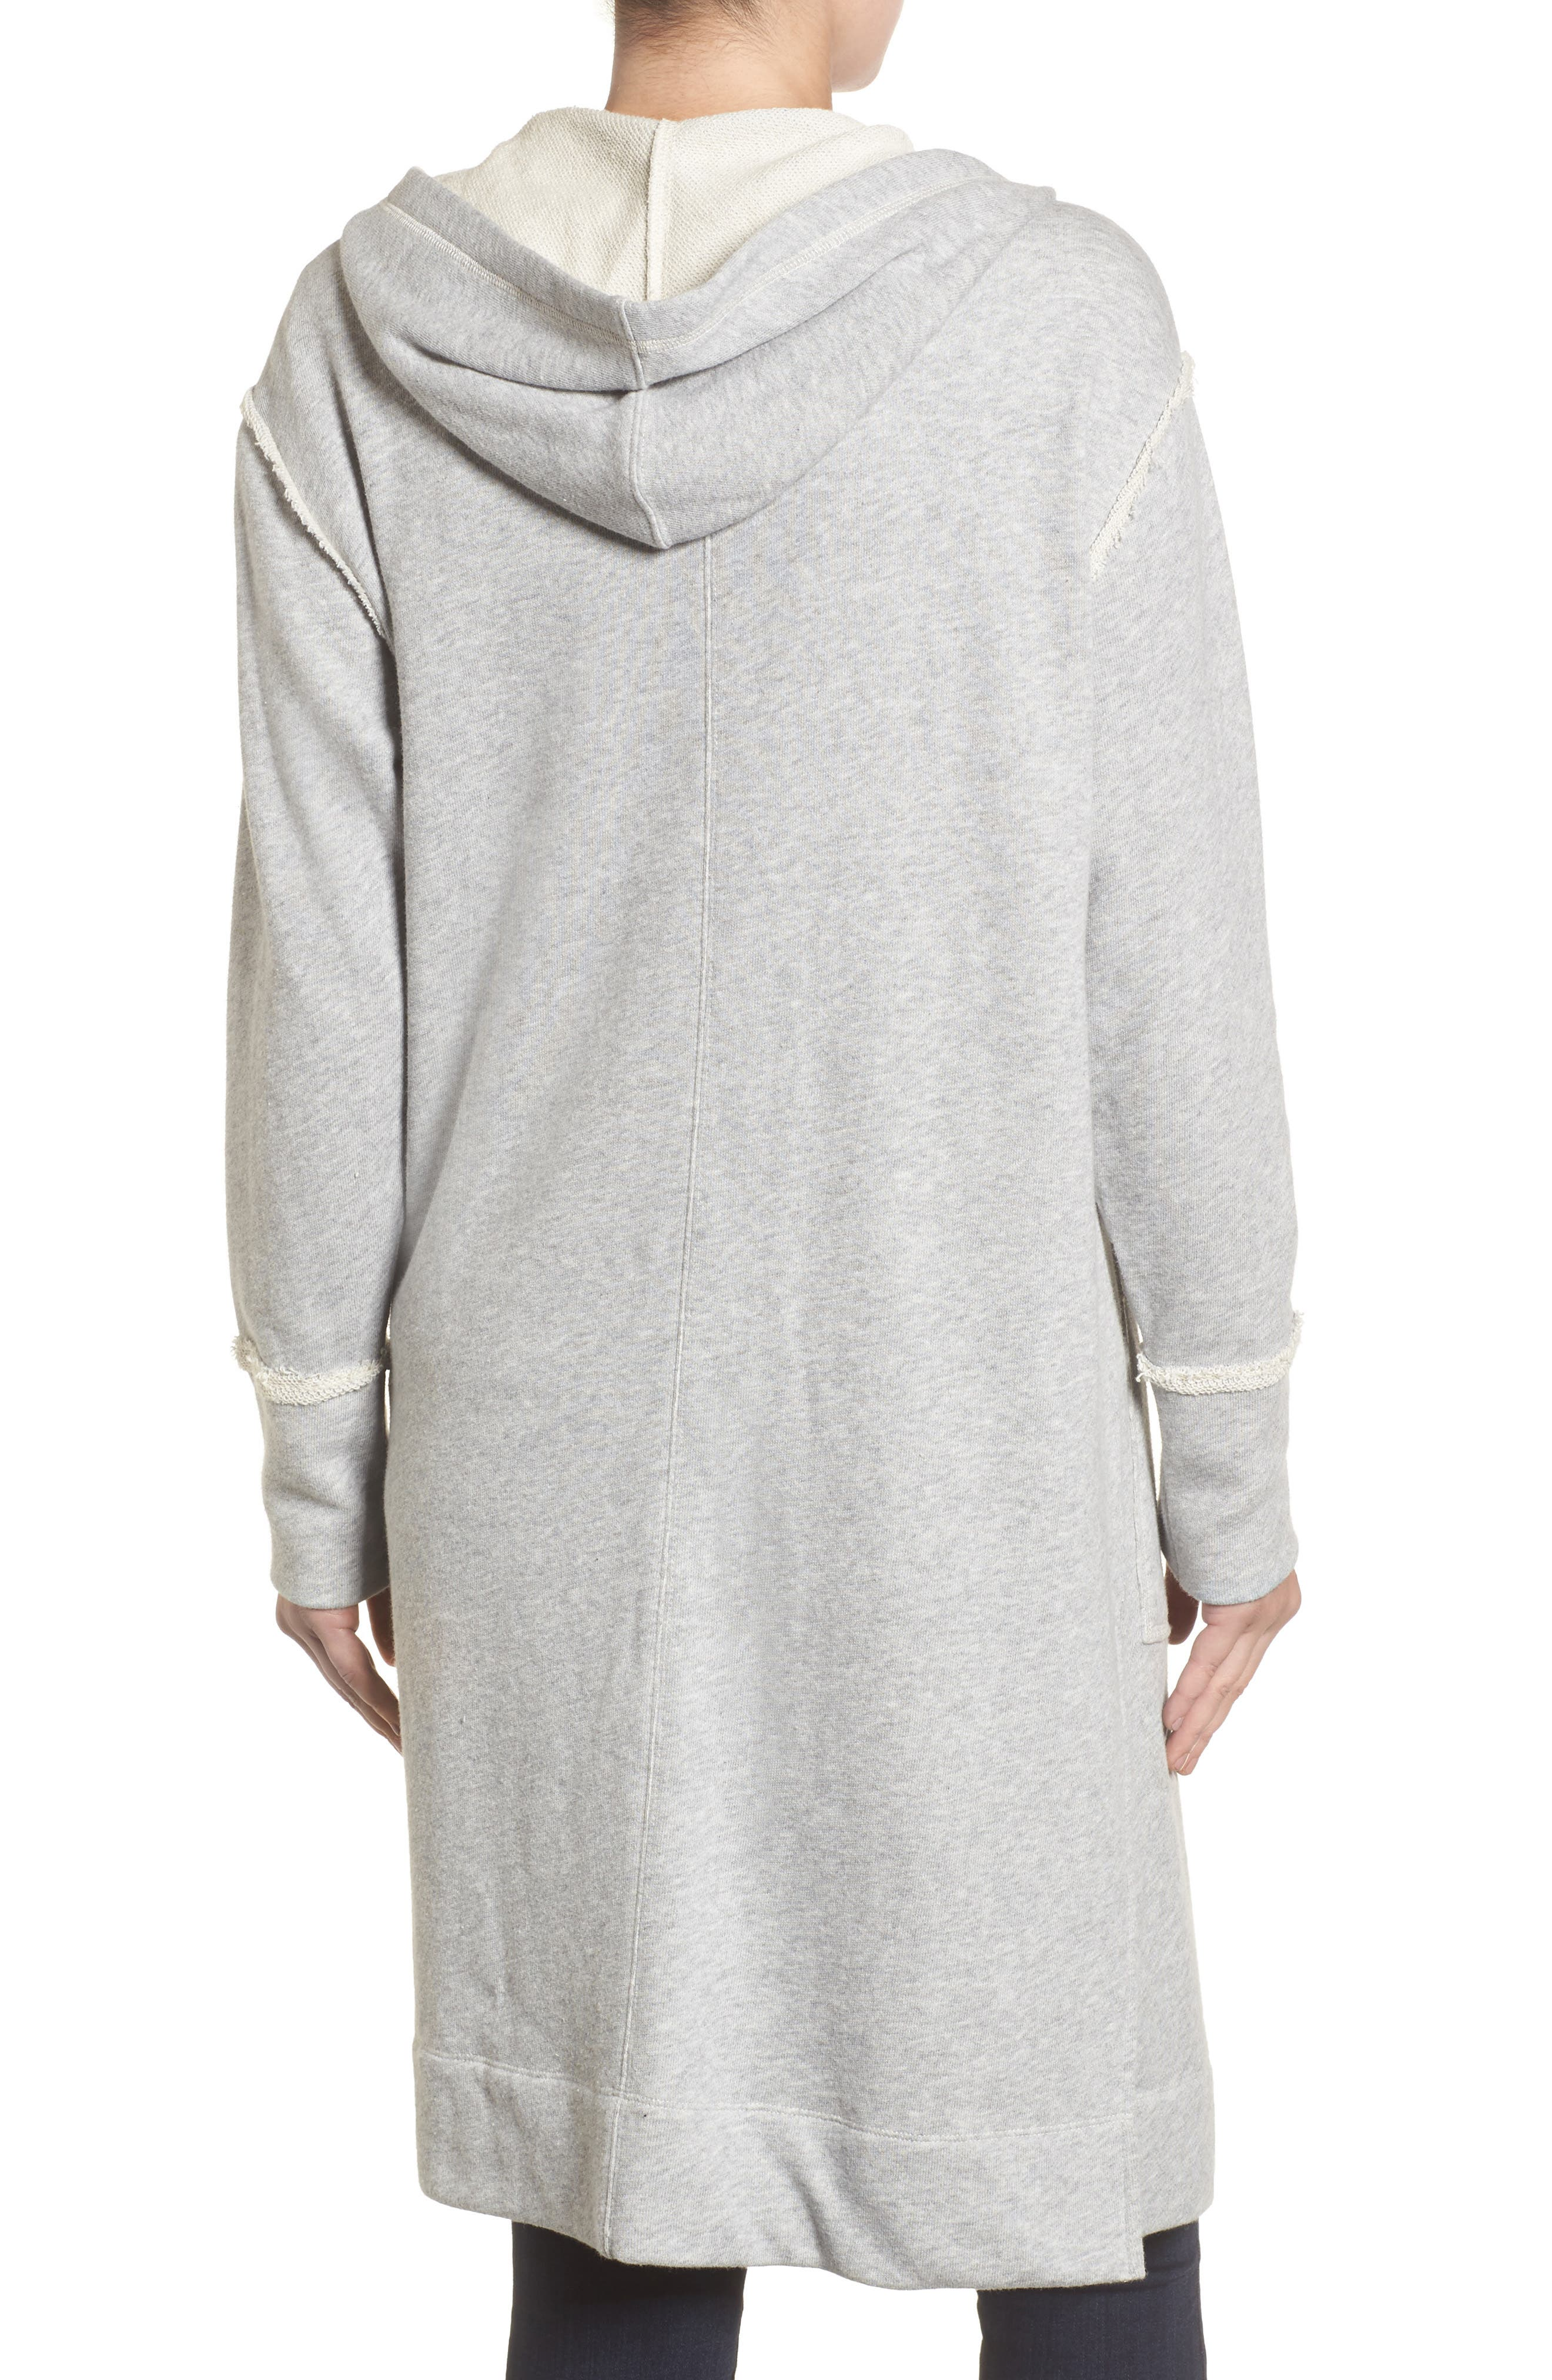 Hooded Long Cardigan,                             Alternate thumbnail 2, color,                             Grey Heather